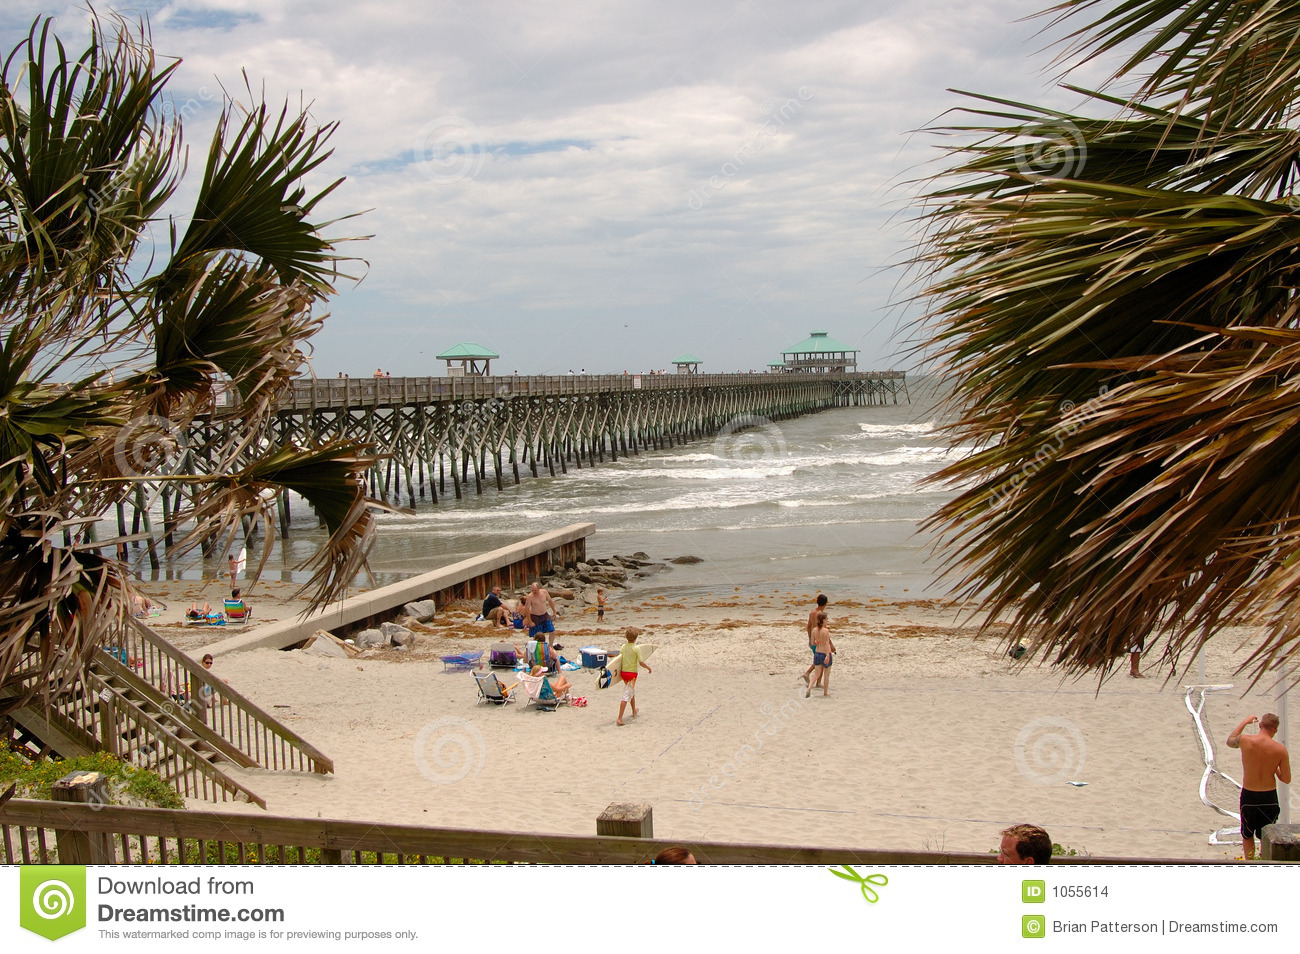 folly beach single muslim girls Ideas of where to eat, what to do, where to shop, things to see, where to stay, and how to enjoy your trip to folly beach, south carolina.